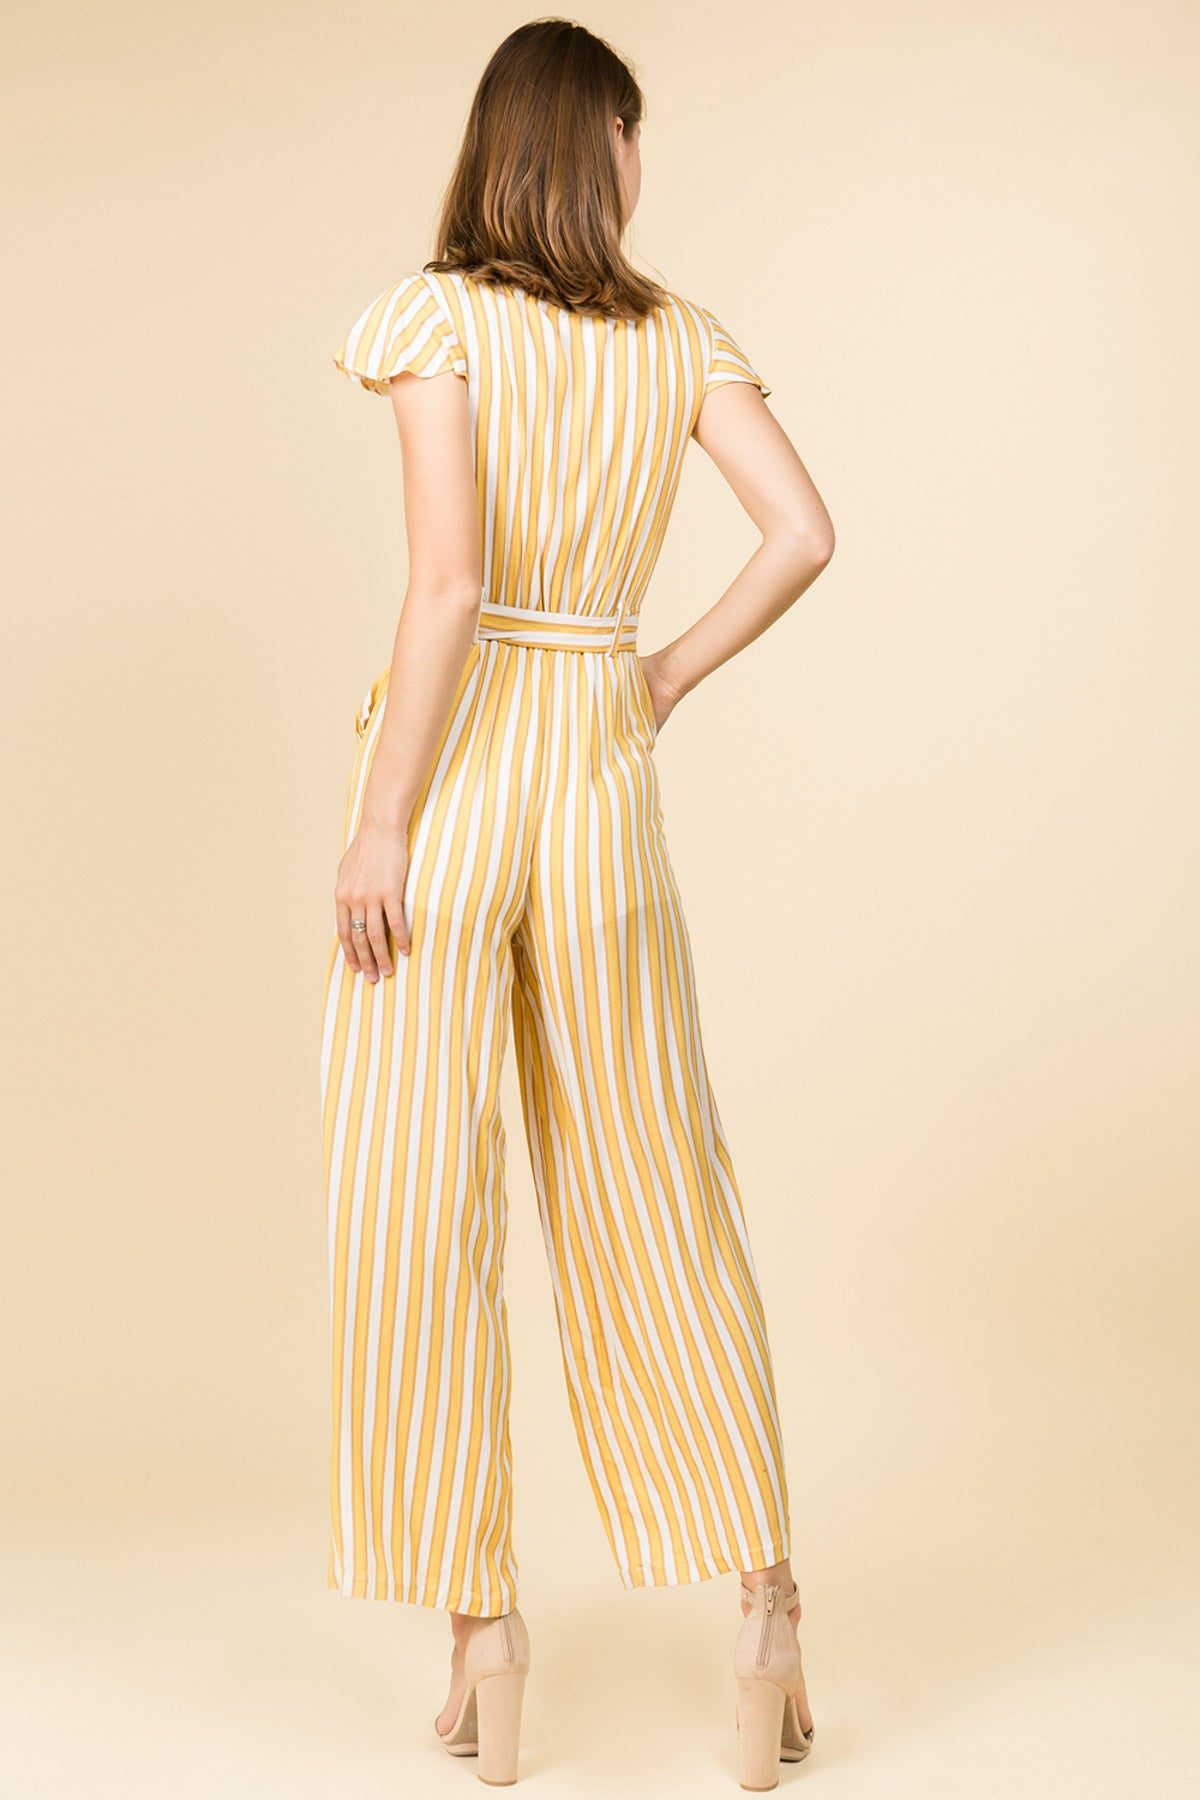 BUTTON DOWN SHORT SLEEVE JUMPSUIT IN YELLOW STRIPE